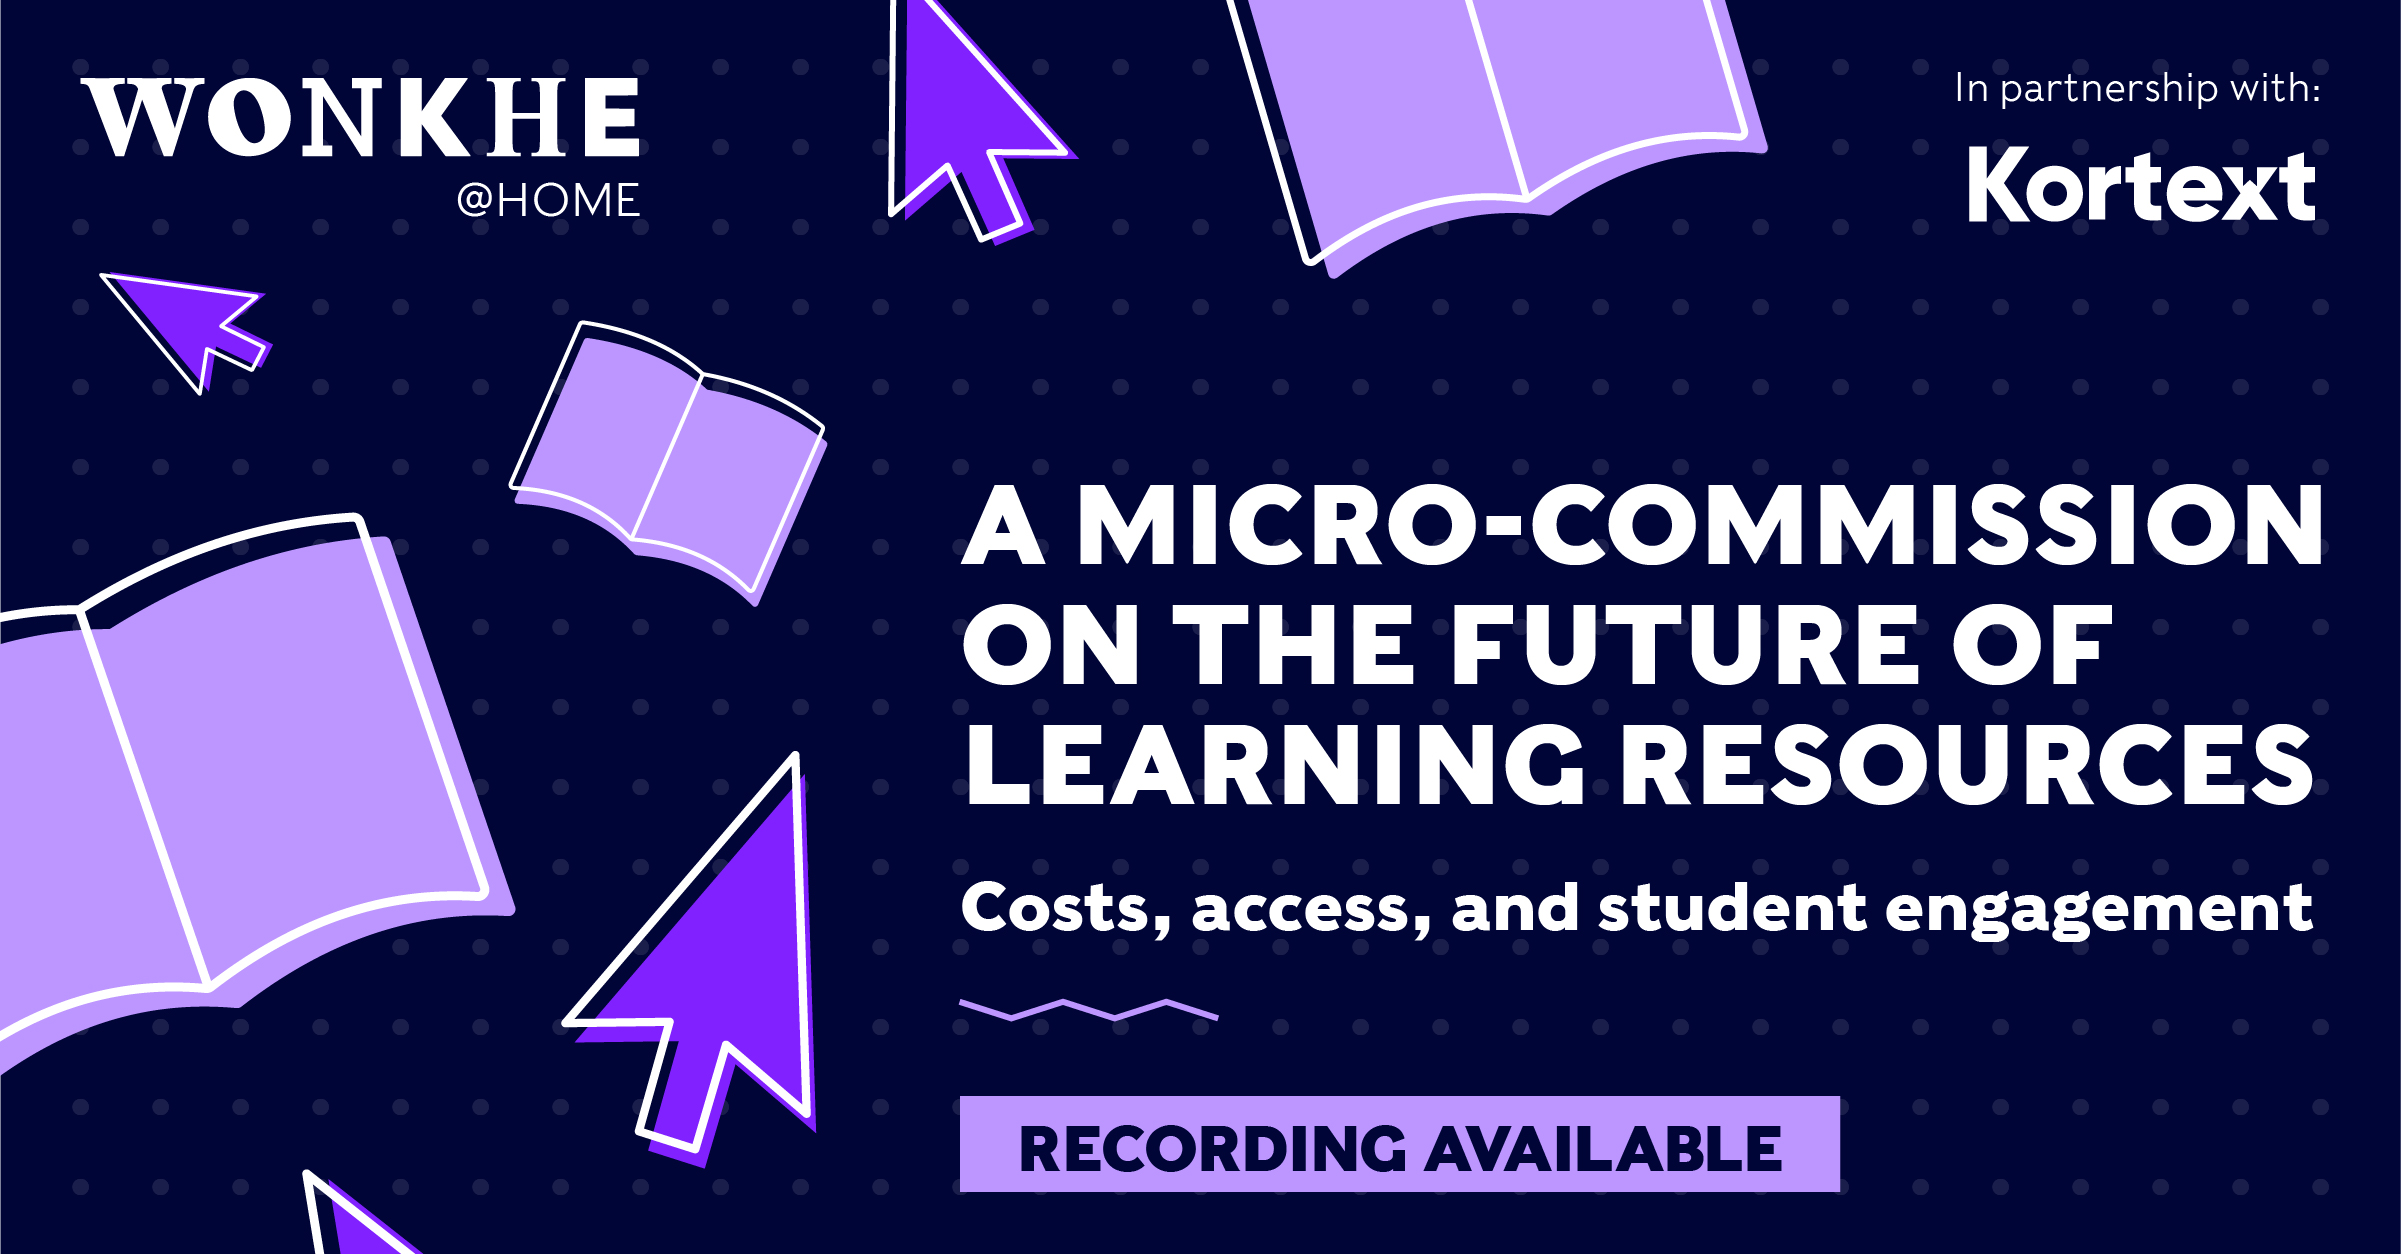 Image of Wonkhe @ Home: A micro-commission on the future of learning resources